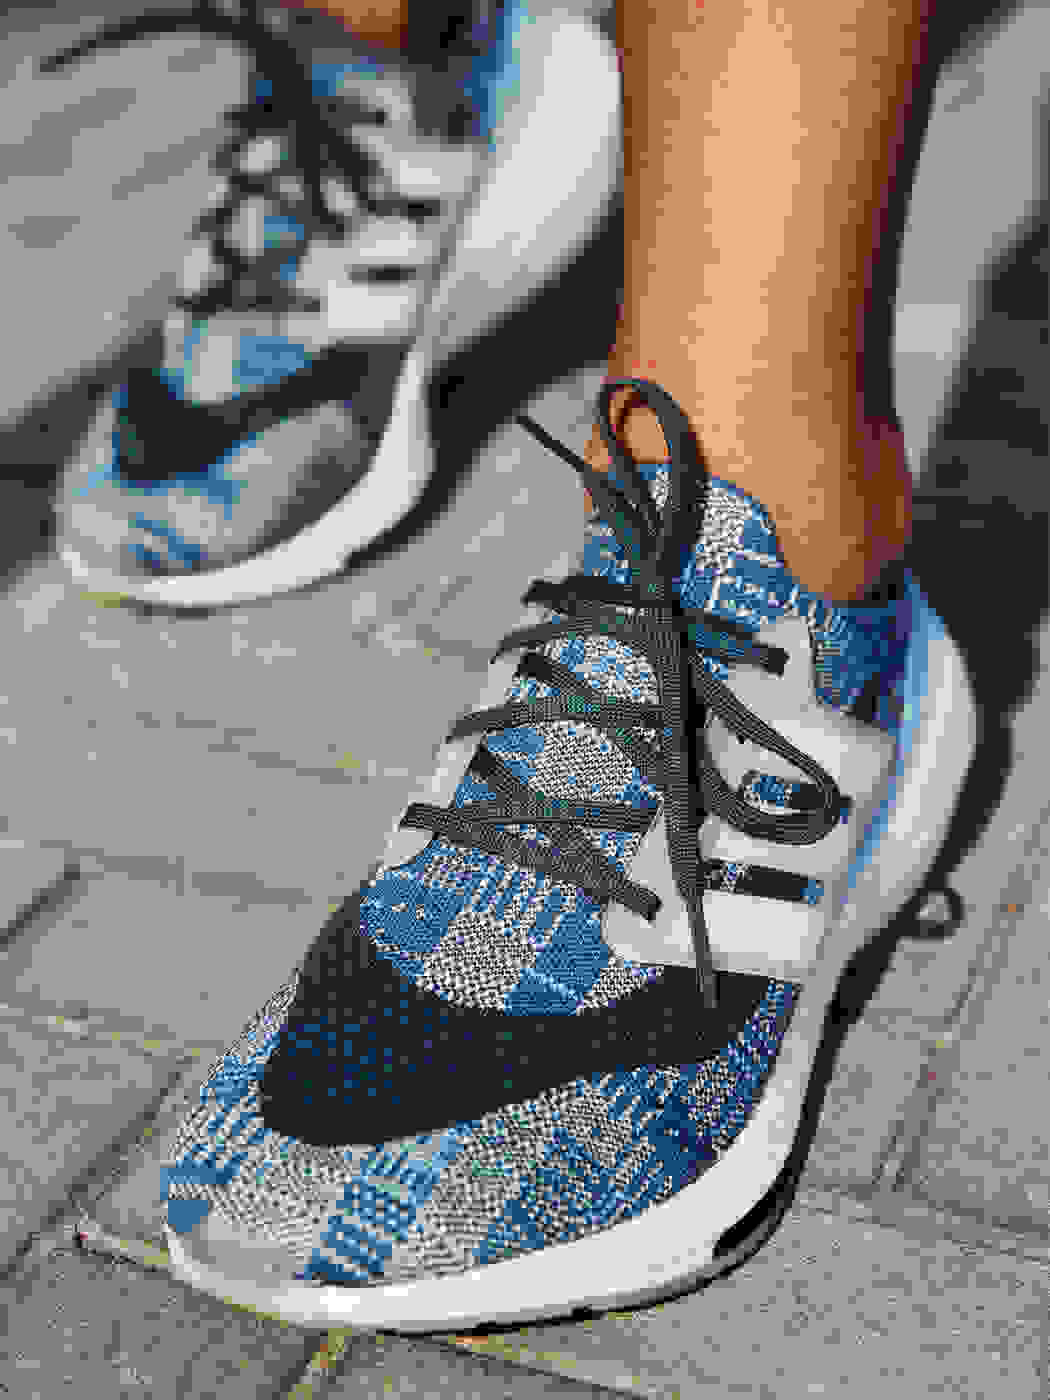 A person is wearing Primeblue Ultraboost 21 running shoes